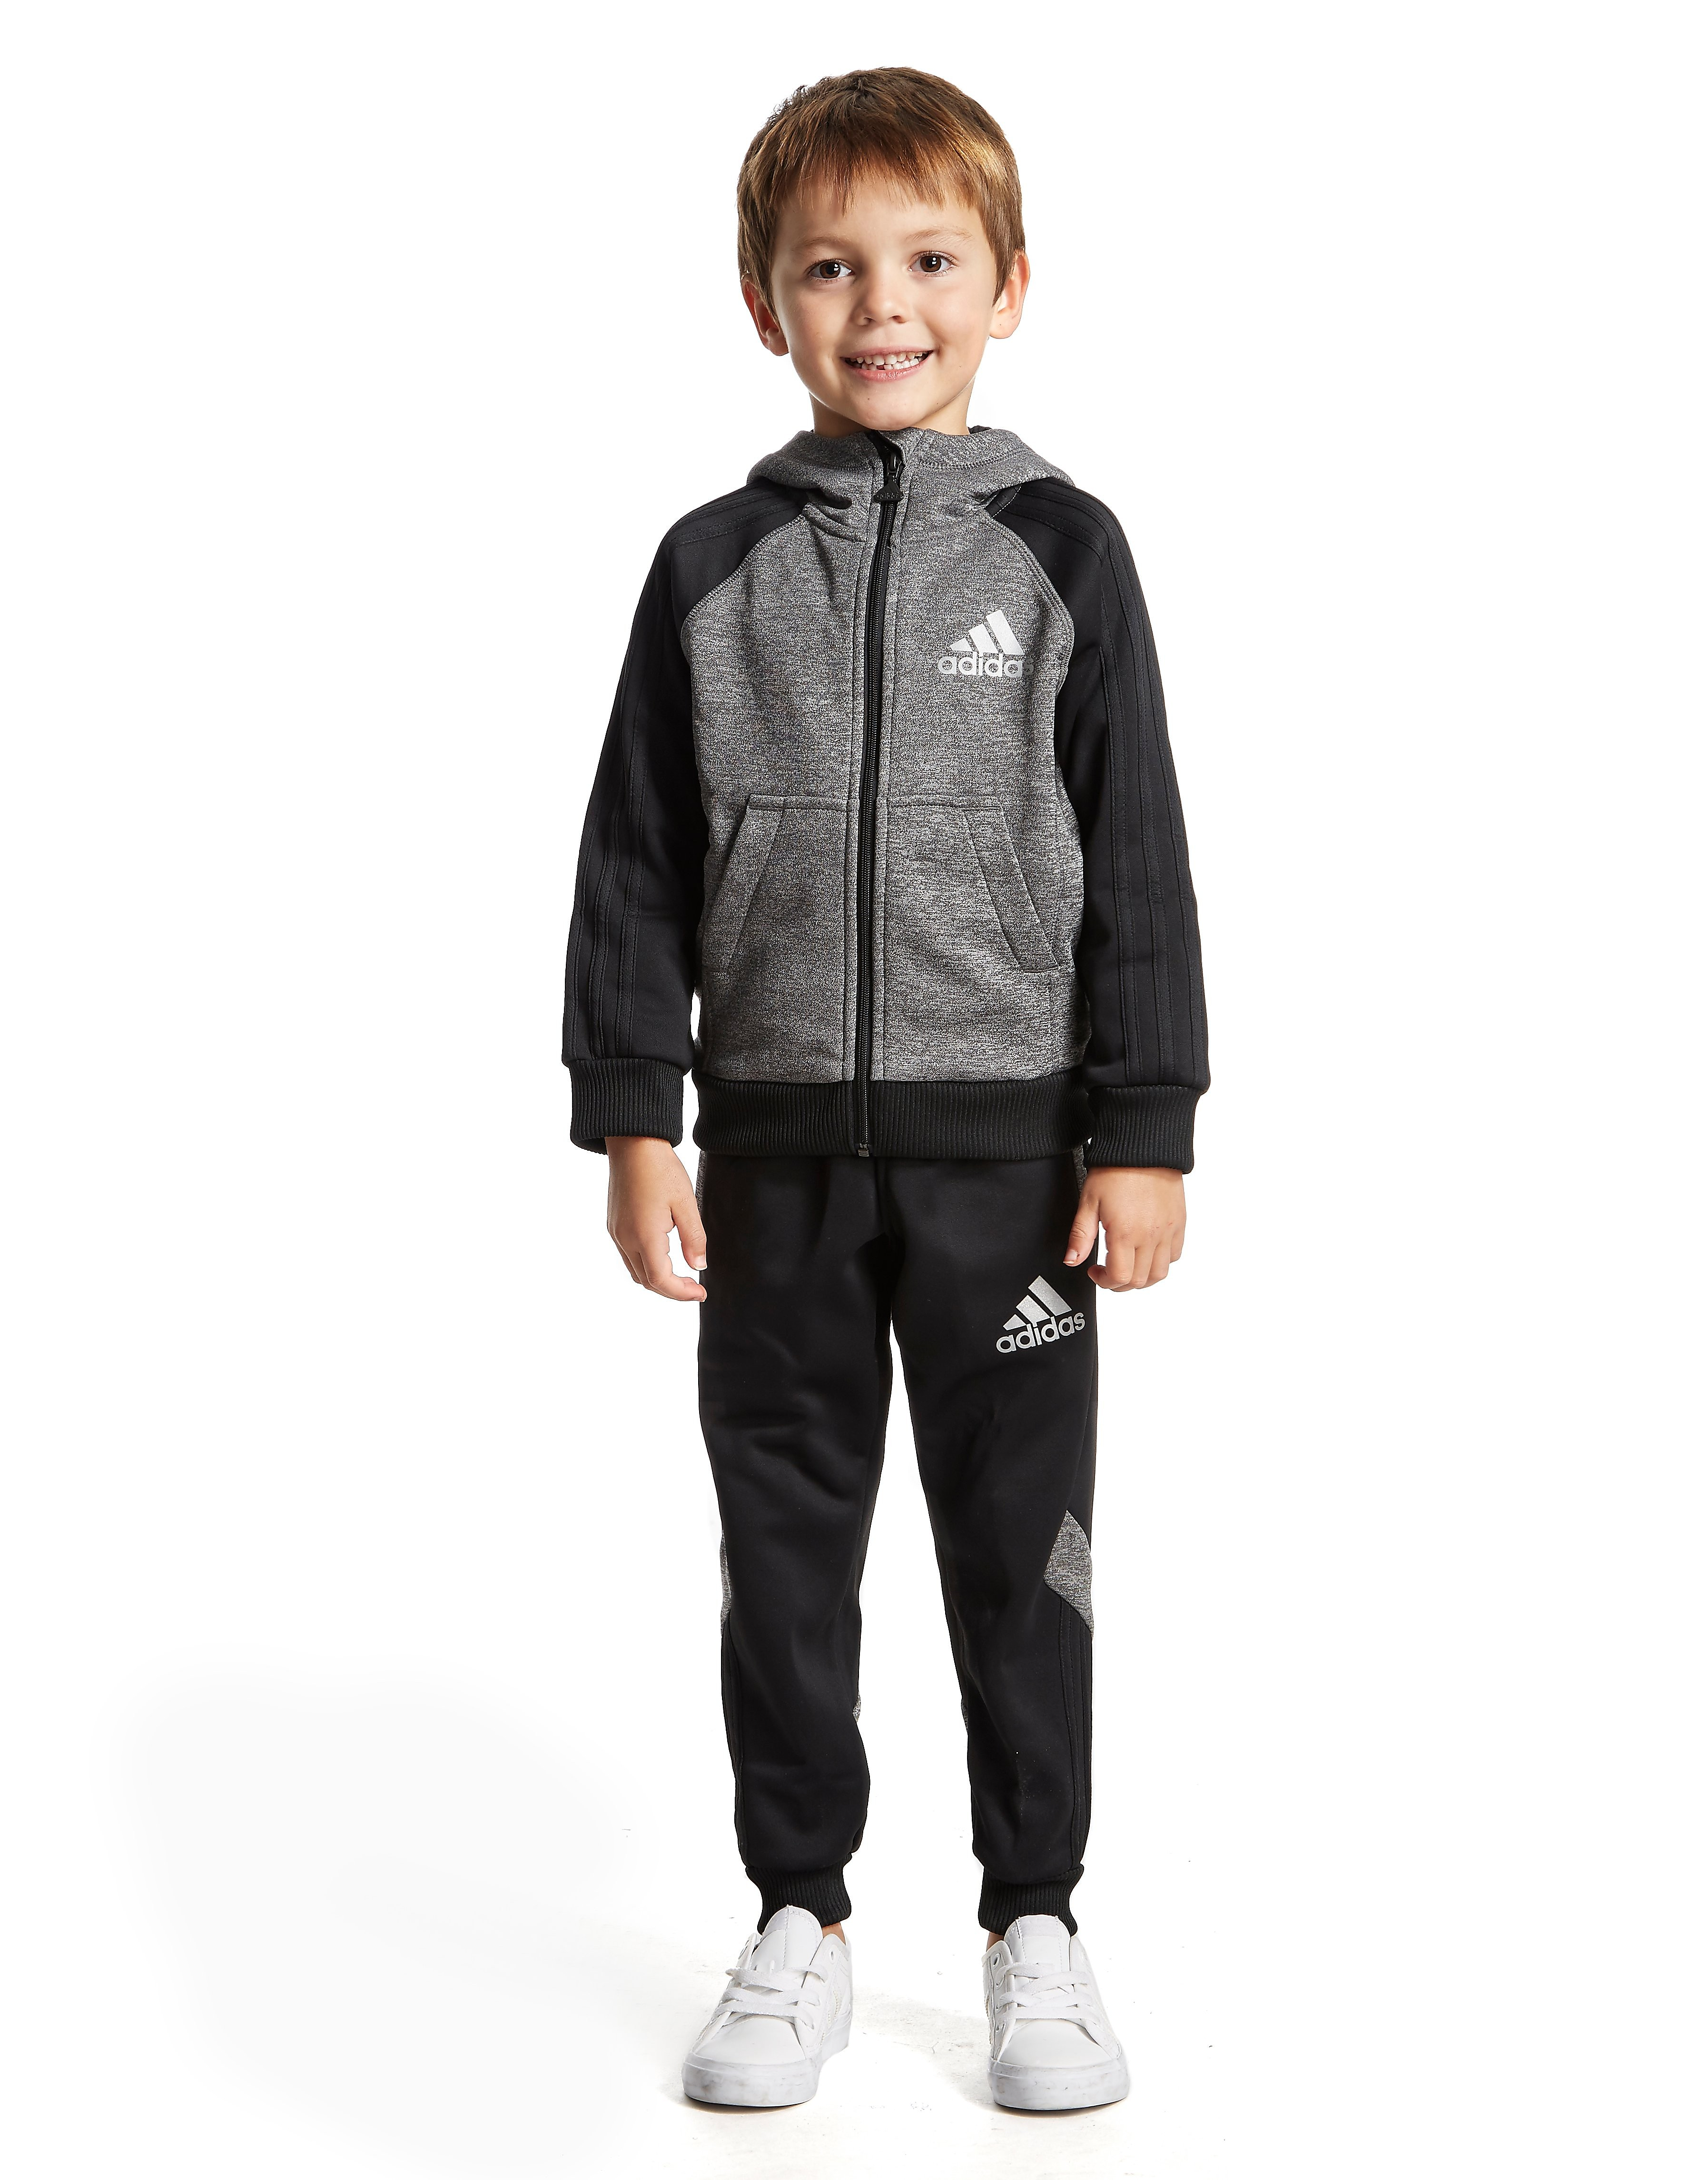 adidas Poly Marl Suit Children's